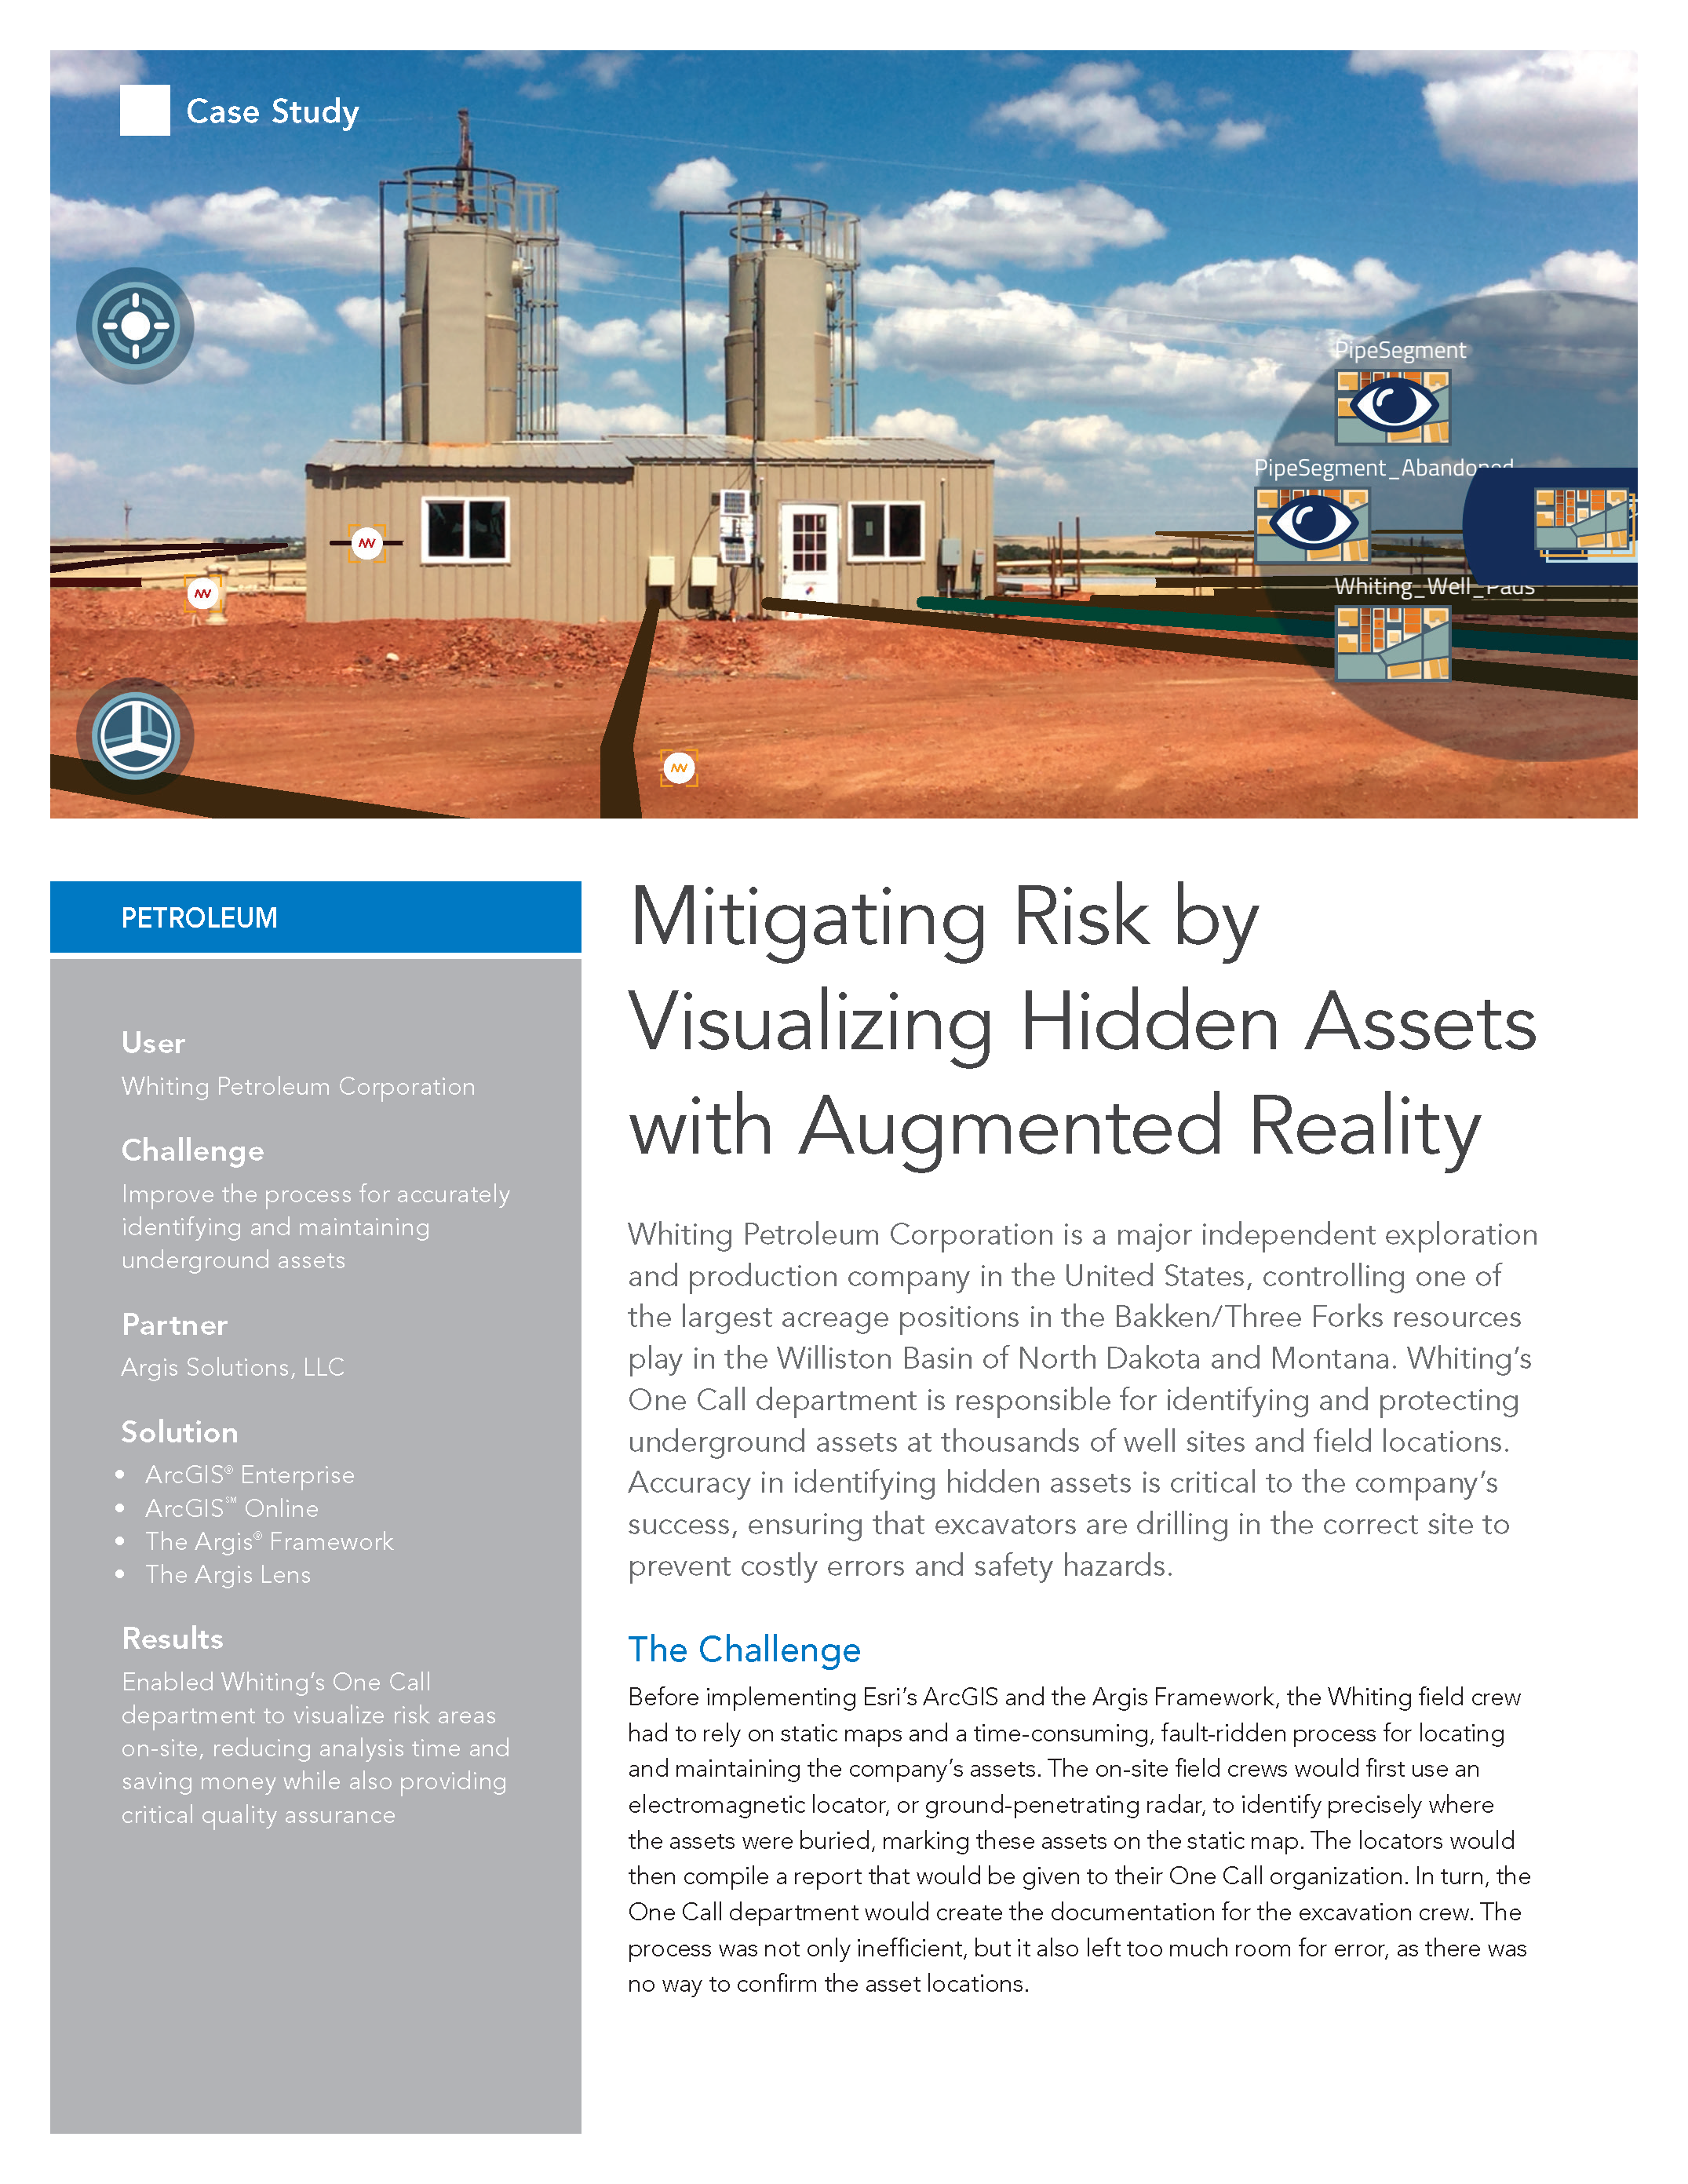 mitigating-risk-by-visualizing-hidden-assets_Page_1.png